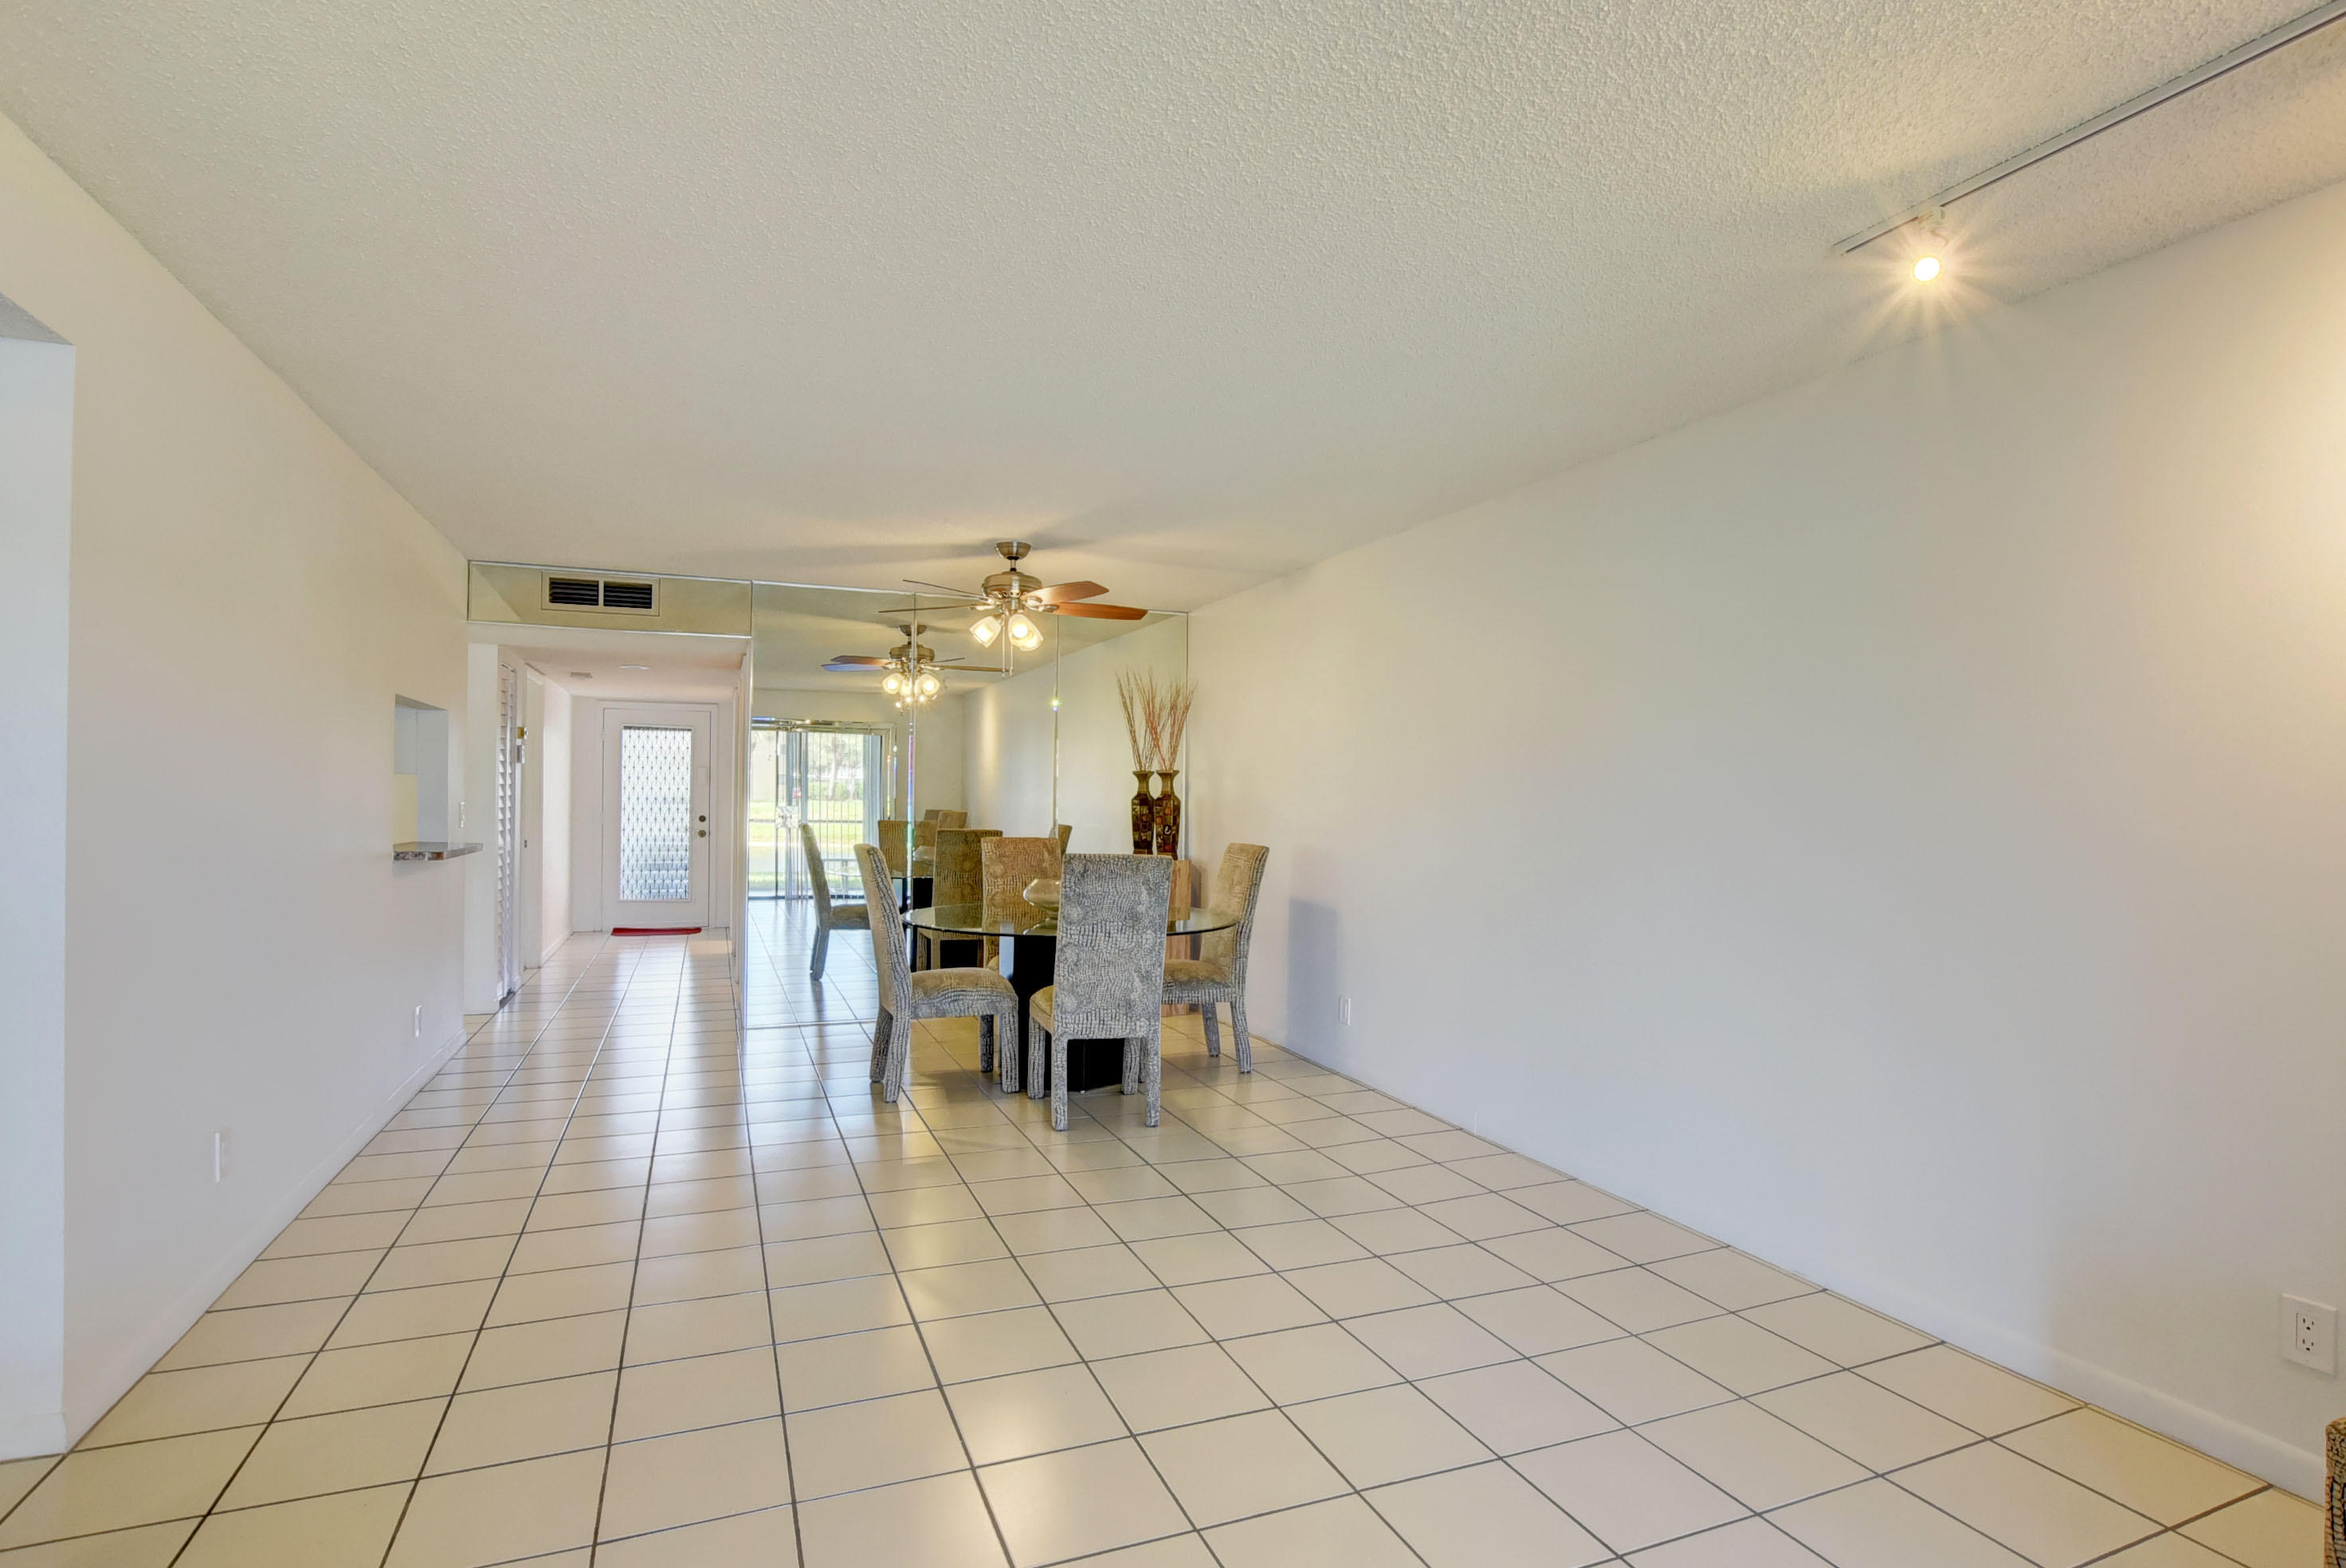 15235 Lakes Of Delray Boulevard 293 Delray Beach, FL 33484 small photo 8